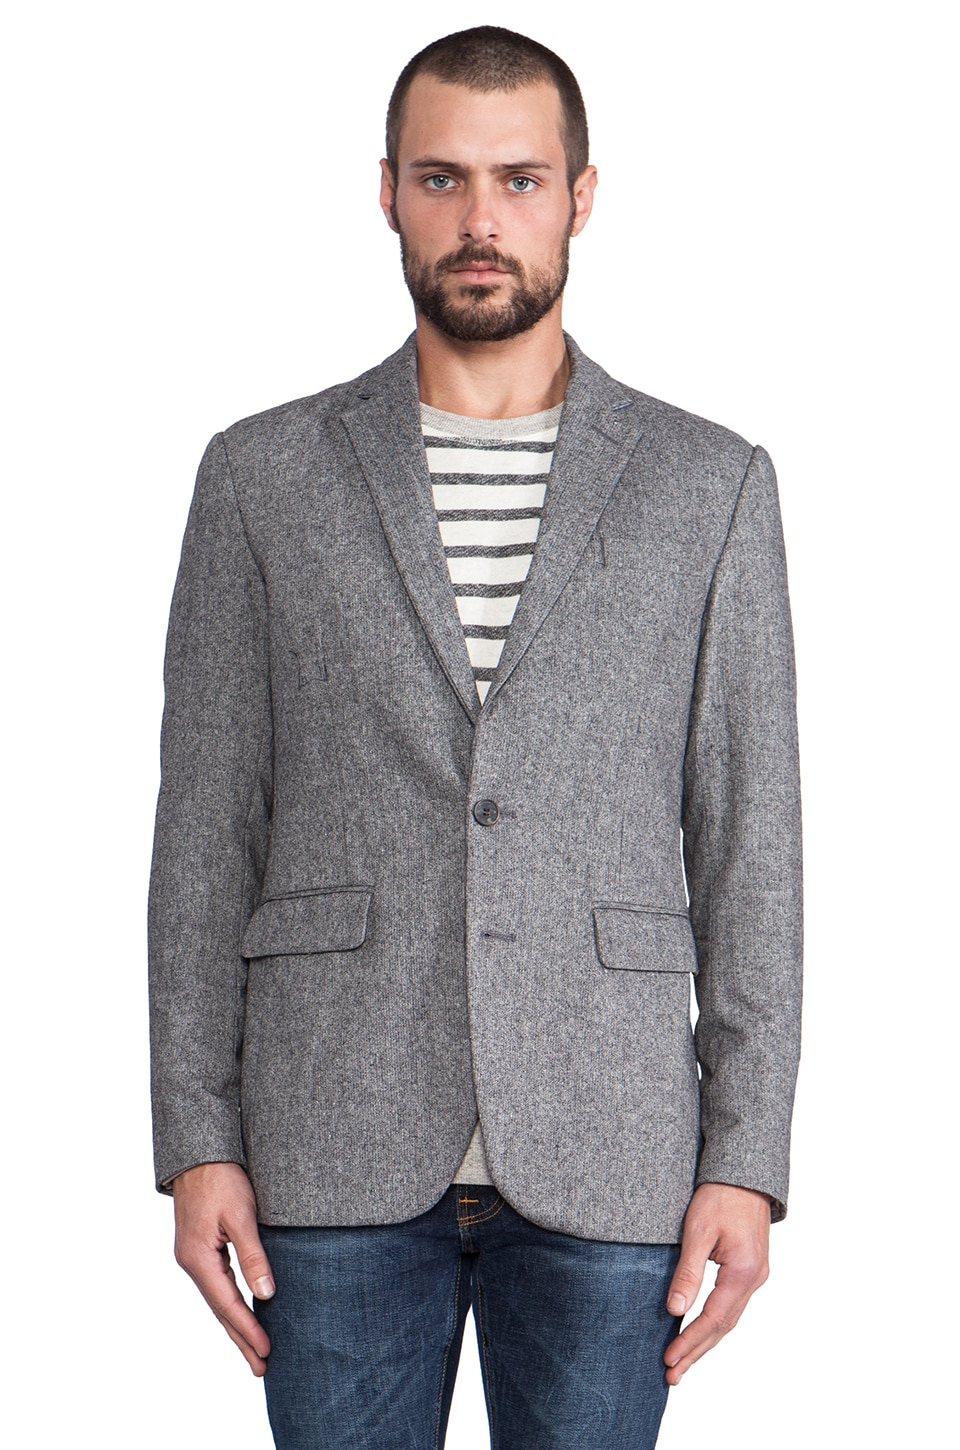 Shades of Grey by Micah Cohen 2 Button Blazer en Grey Tweed